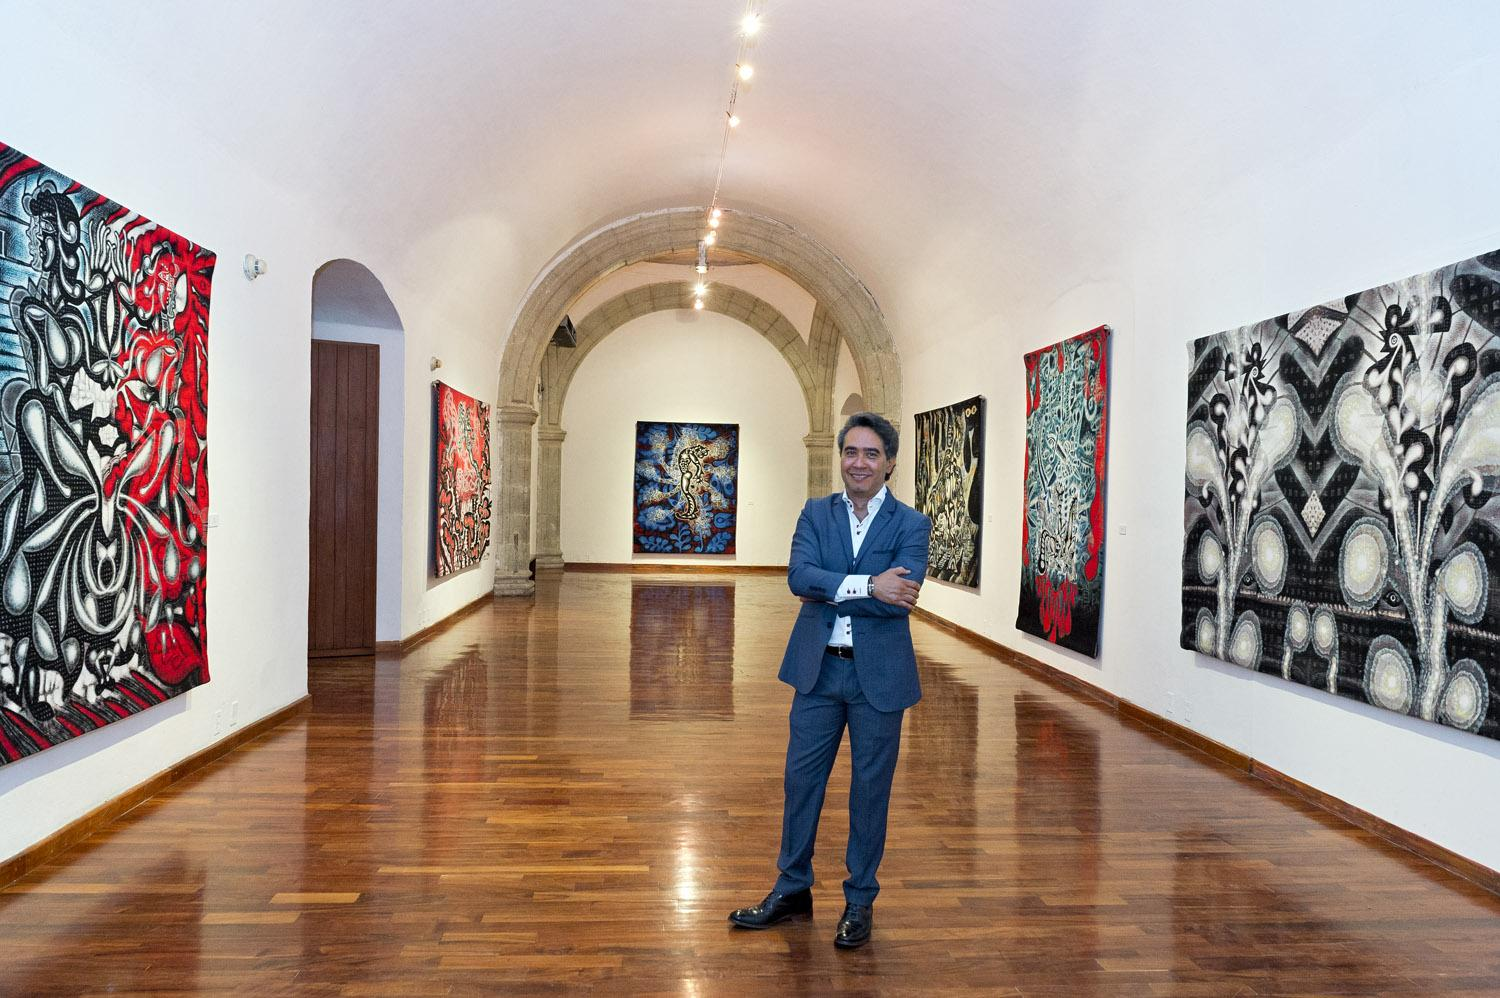 Carlos Luna at Green Machine: The Art of Carlos Luna; Museo de los Pintores Oaxaqueños, Oaxaca, Mexico, 2016